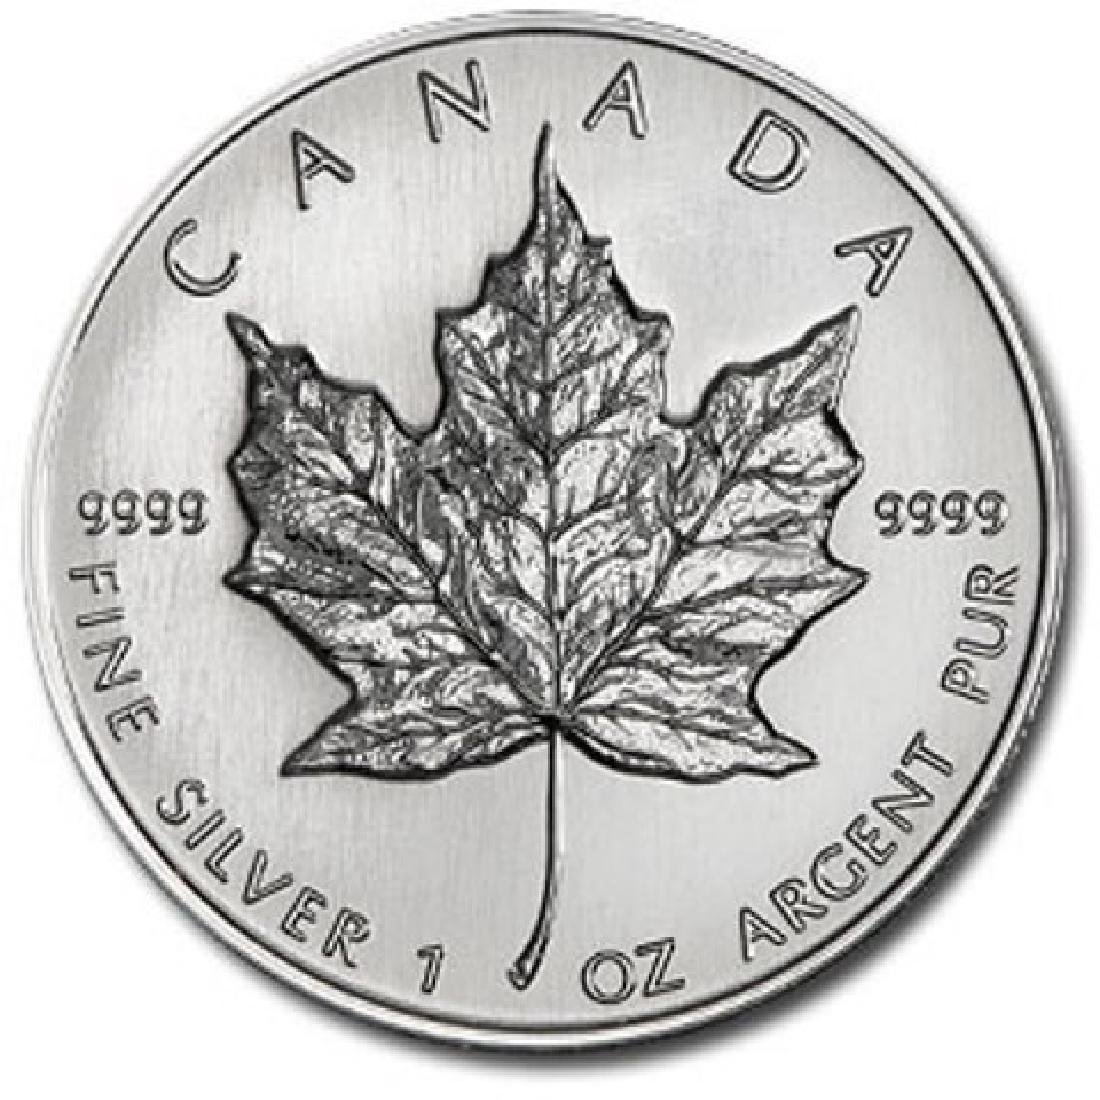 1 oz. Silver Canadian Maple Leaf Random Date